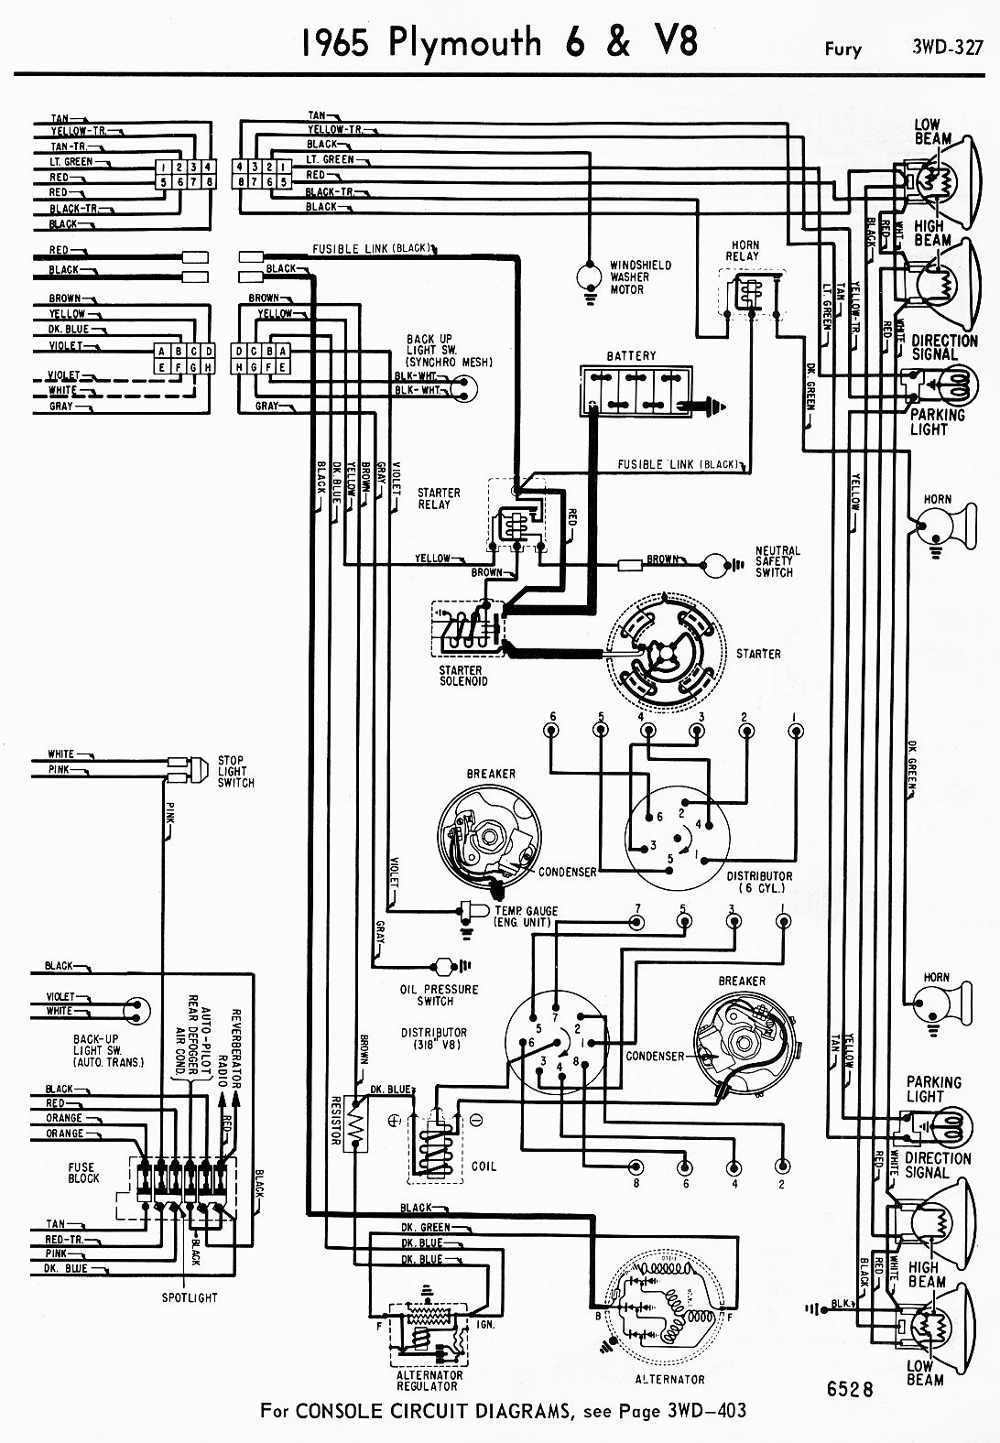 Wiring Diagrams For 1966 Plymouth Diagram Schematics 1965 Corvair Ford Econoline Library Pontiac Fury